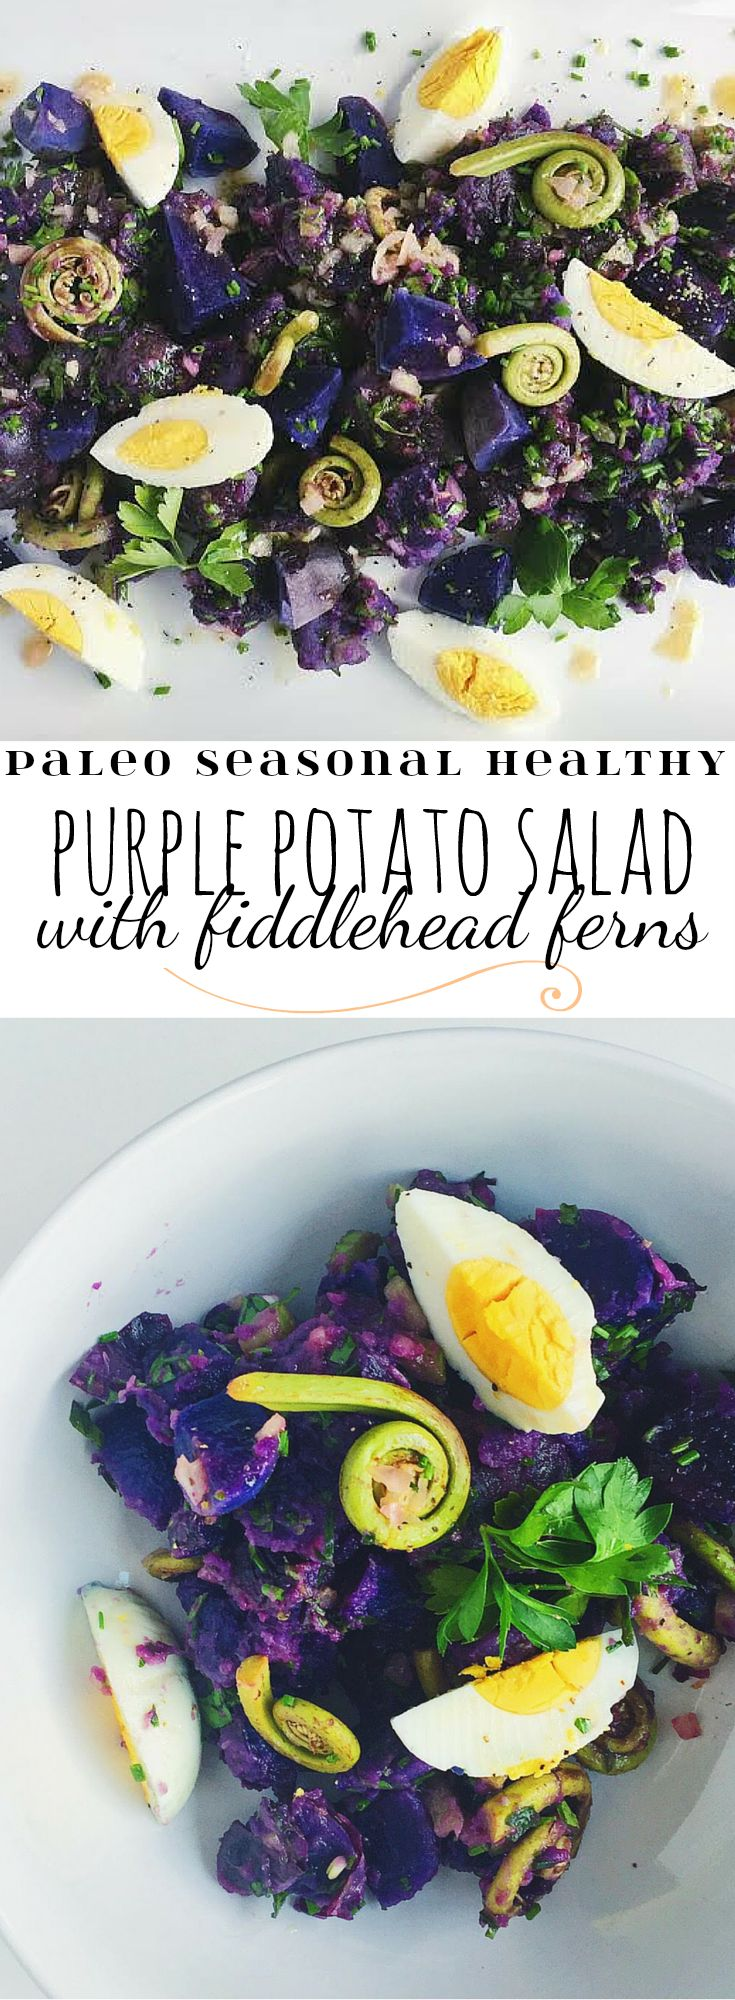 Seasonal purple potato salad with fiddlehead ferns and a lemony vinaigrette!